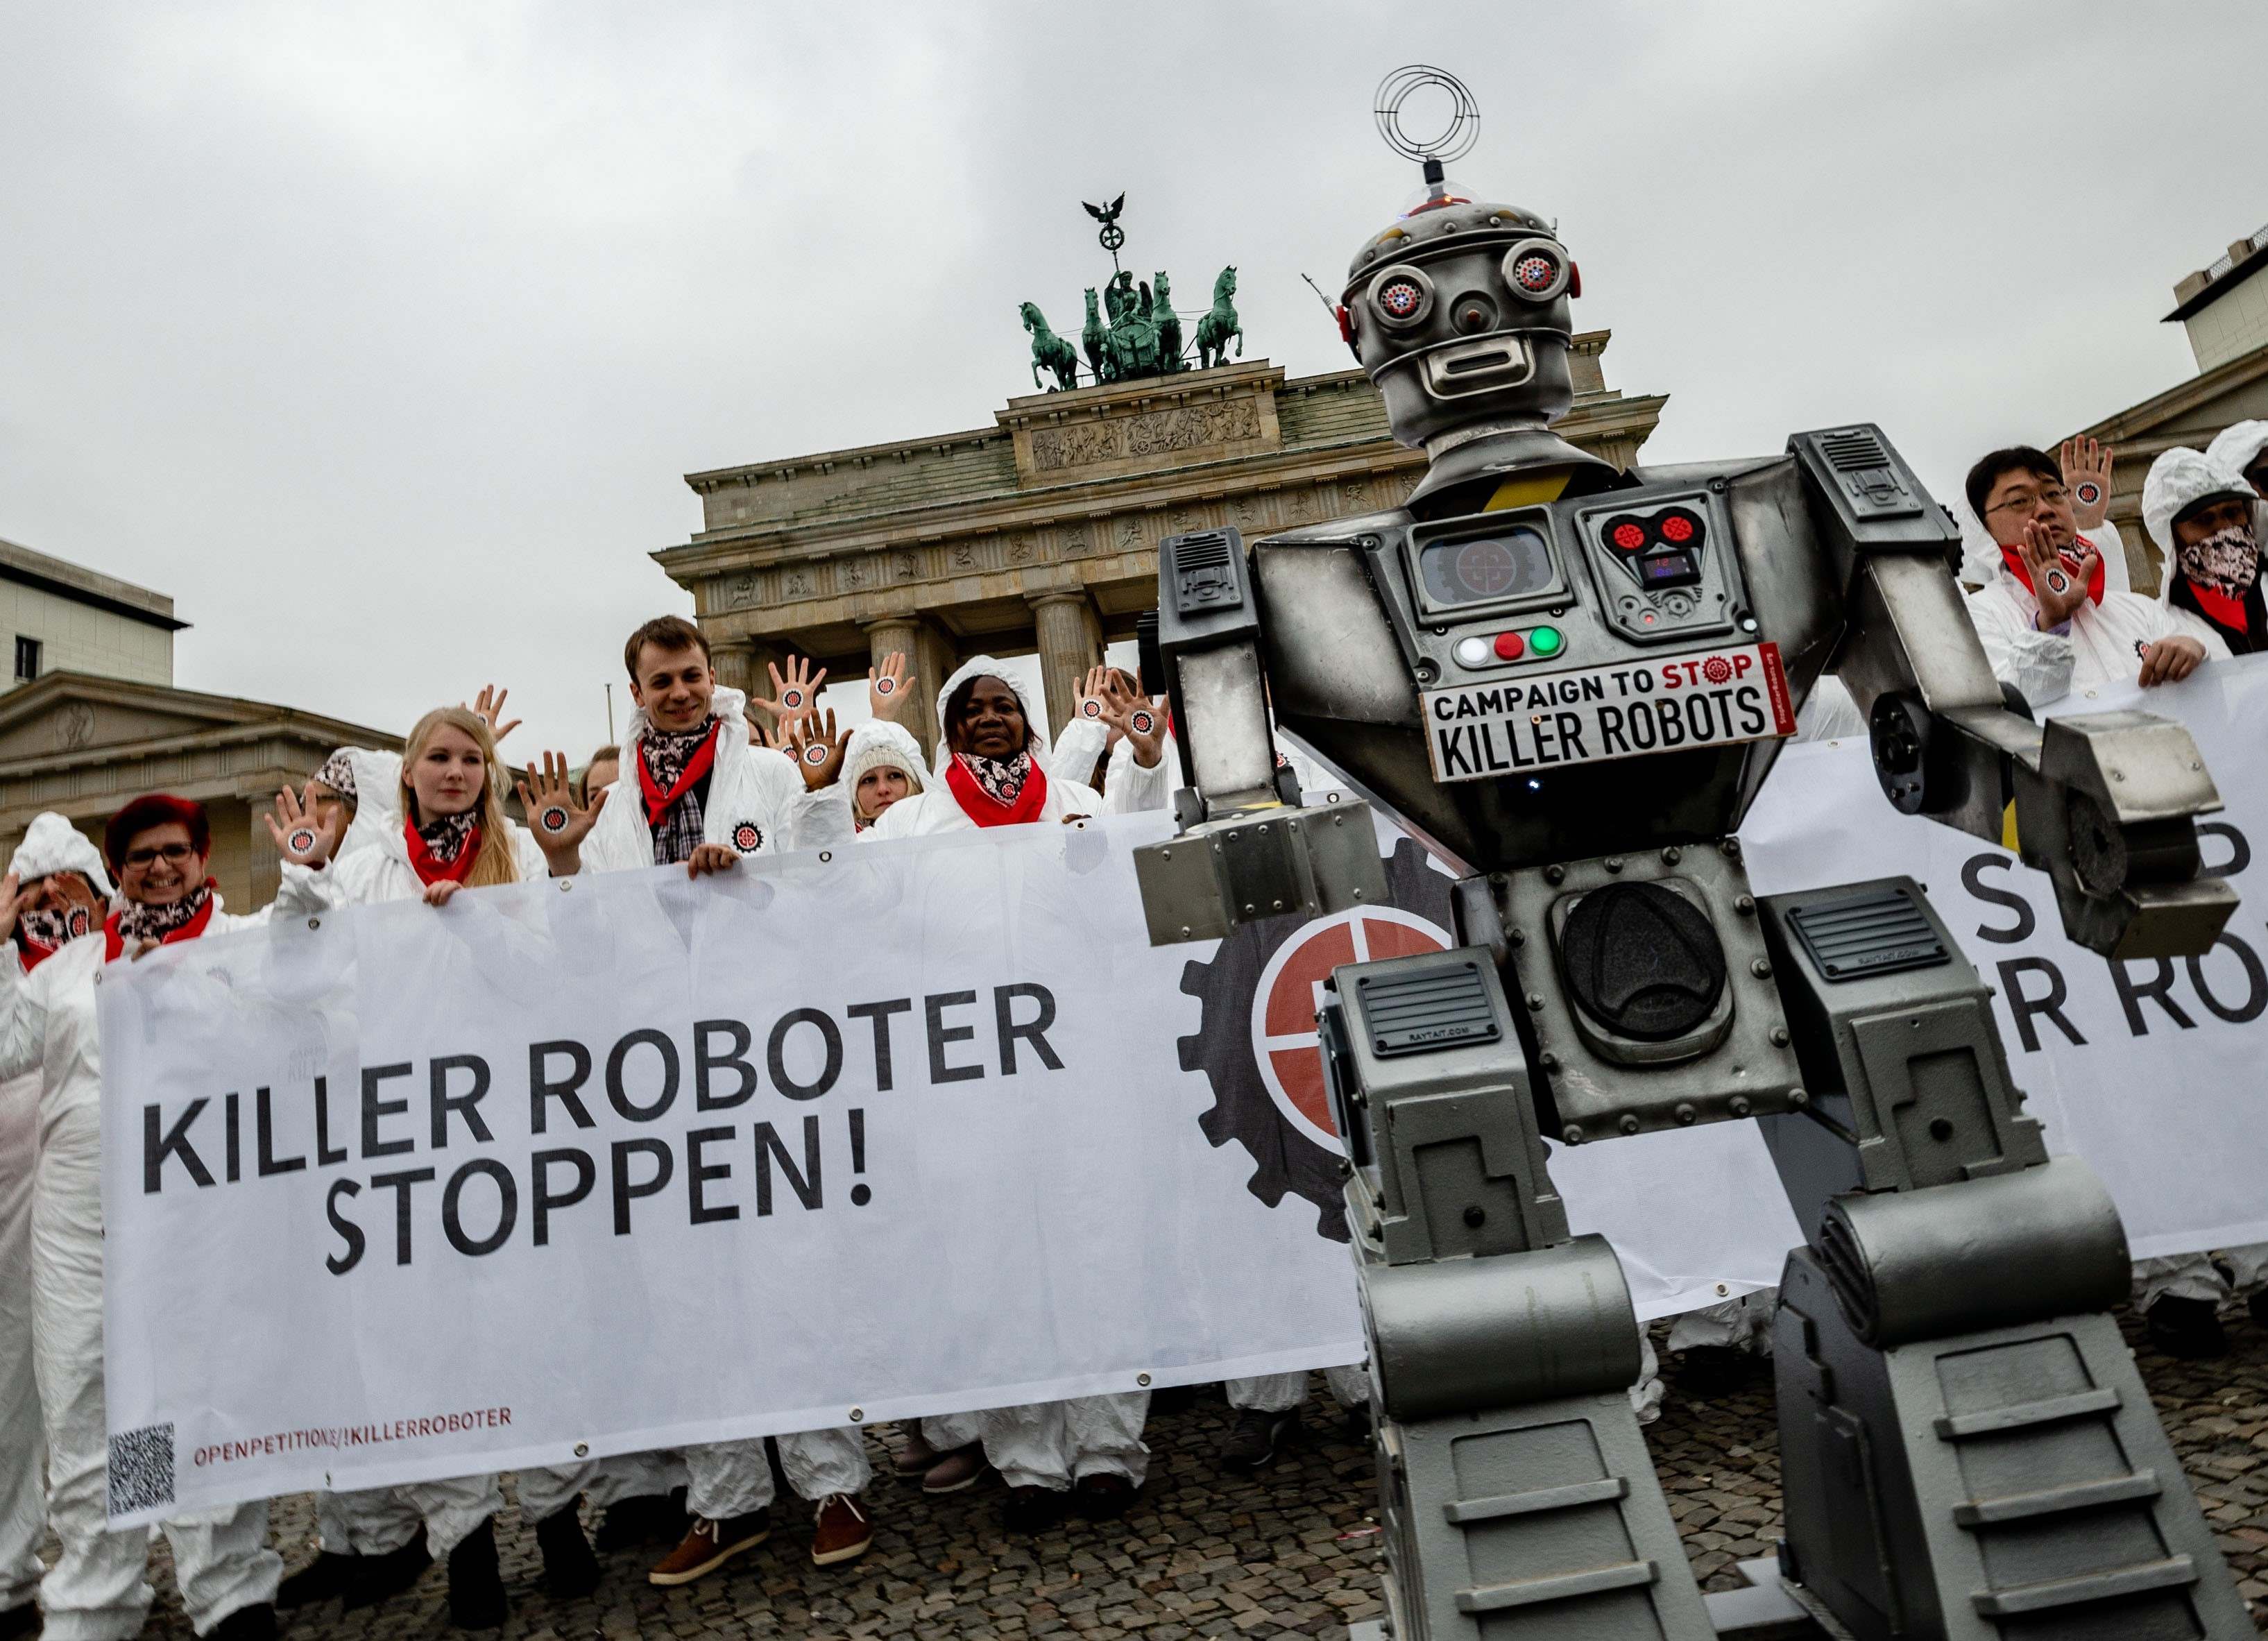 New European poll shows public favour banning killer robots